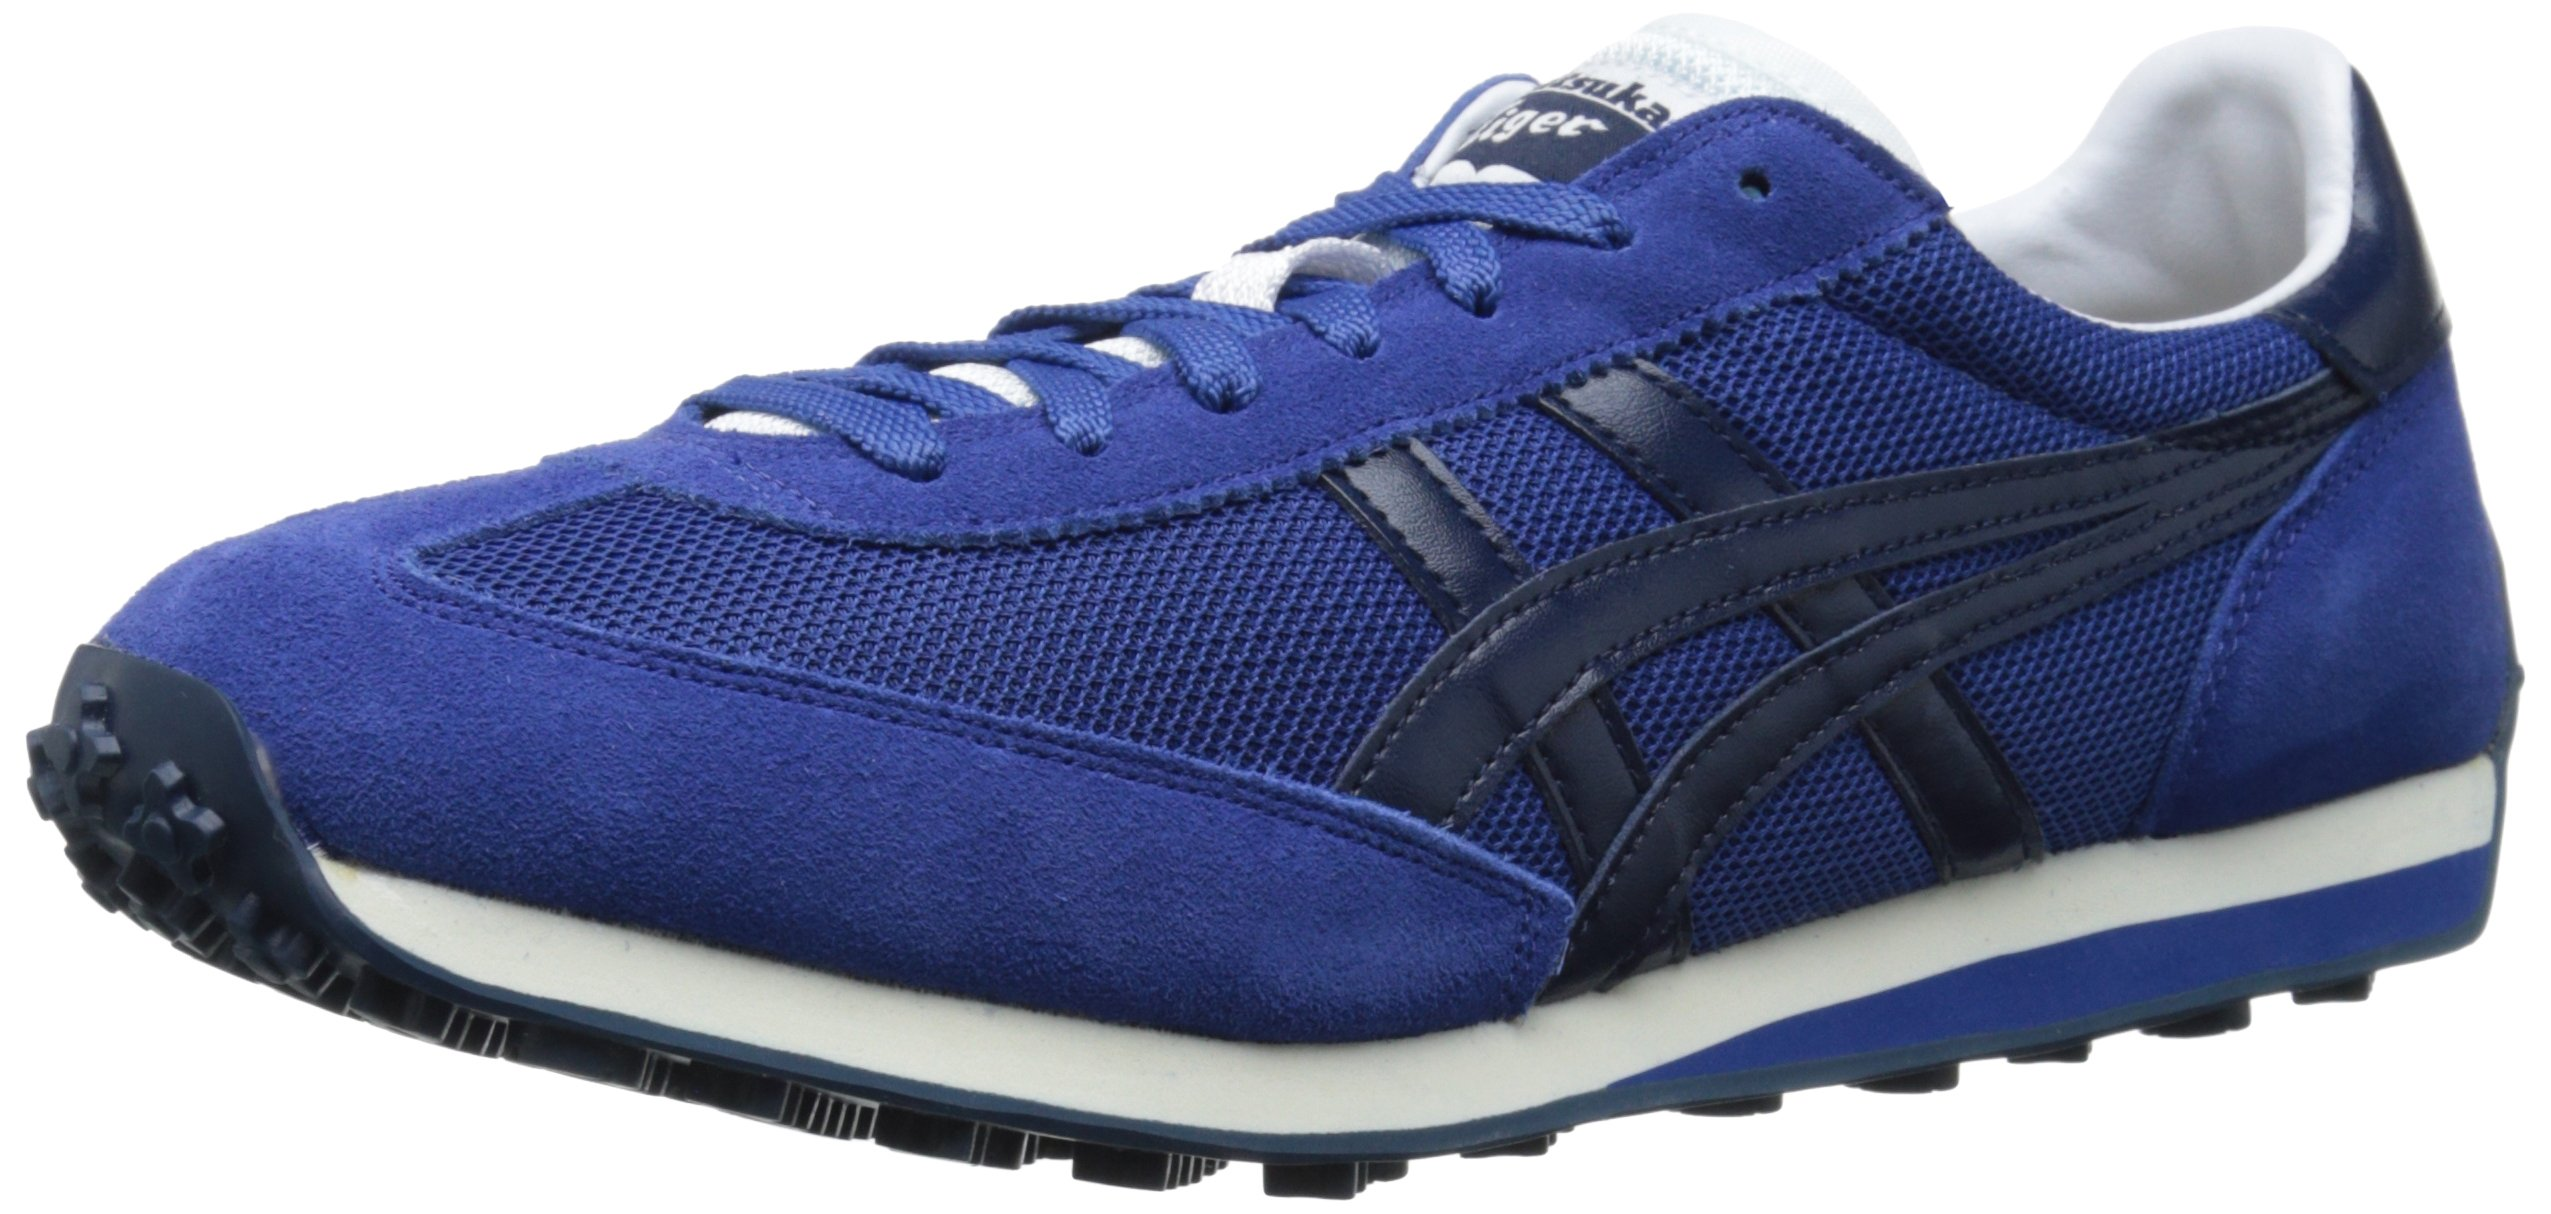 hot sale online 1db40 1ad4a Onitsuka Tiger EDR 78 Running Shoe, Monaco Blue/Navy, 6.5 M US